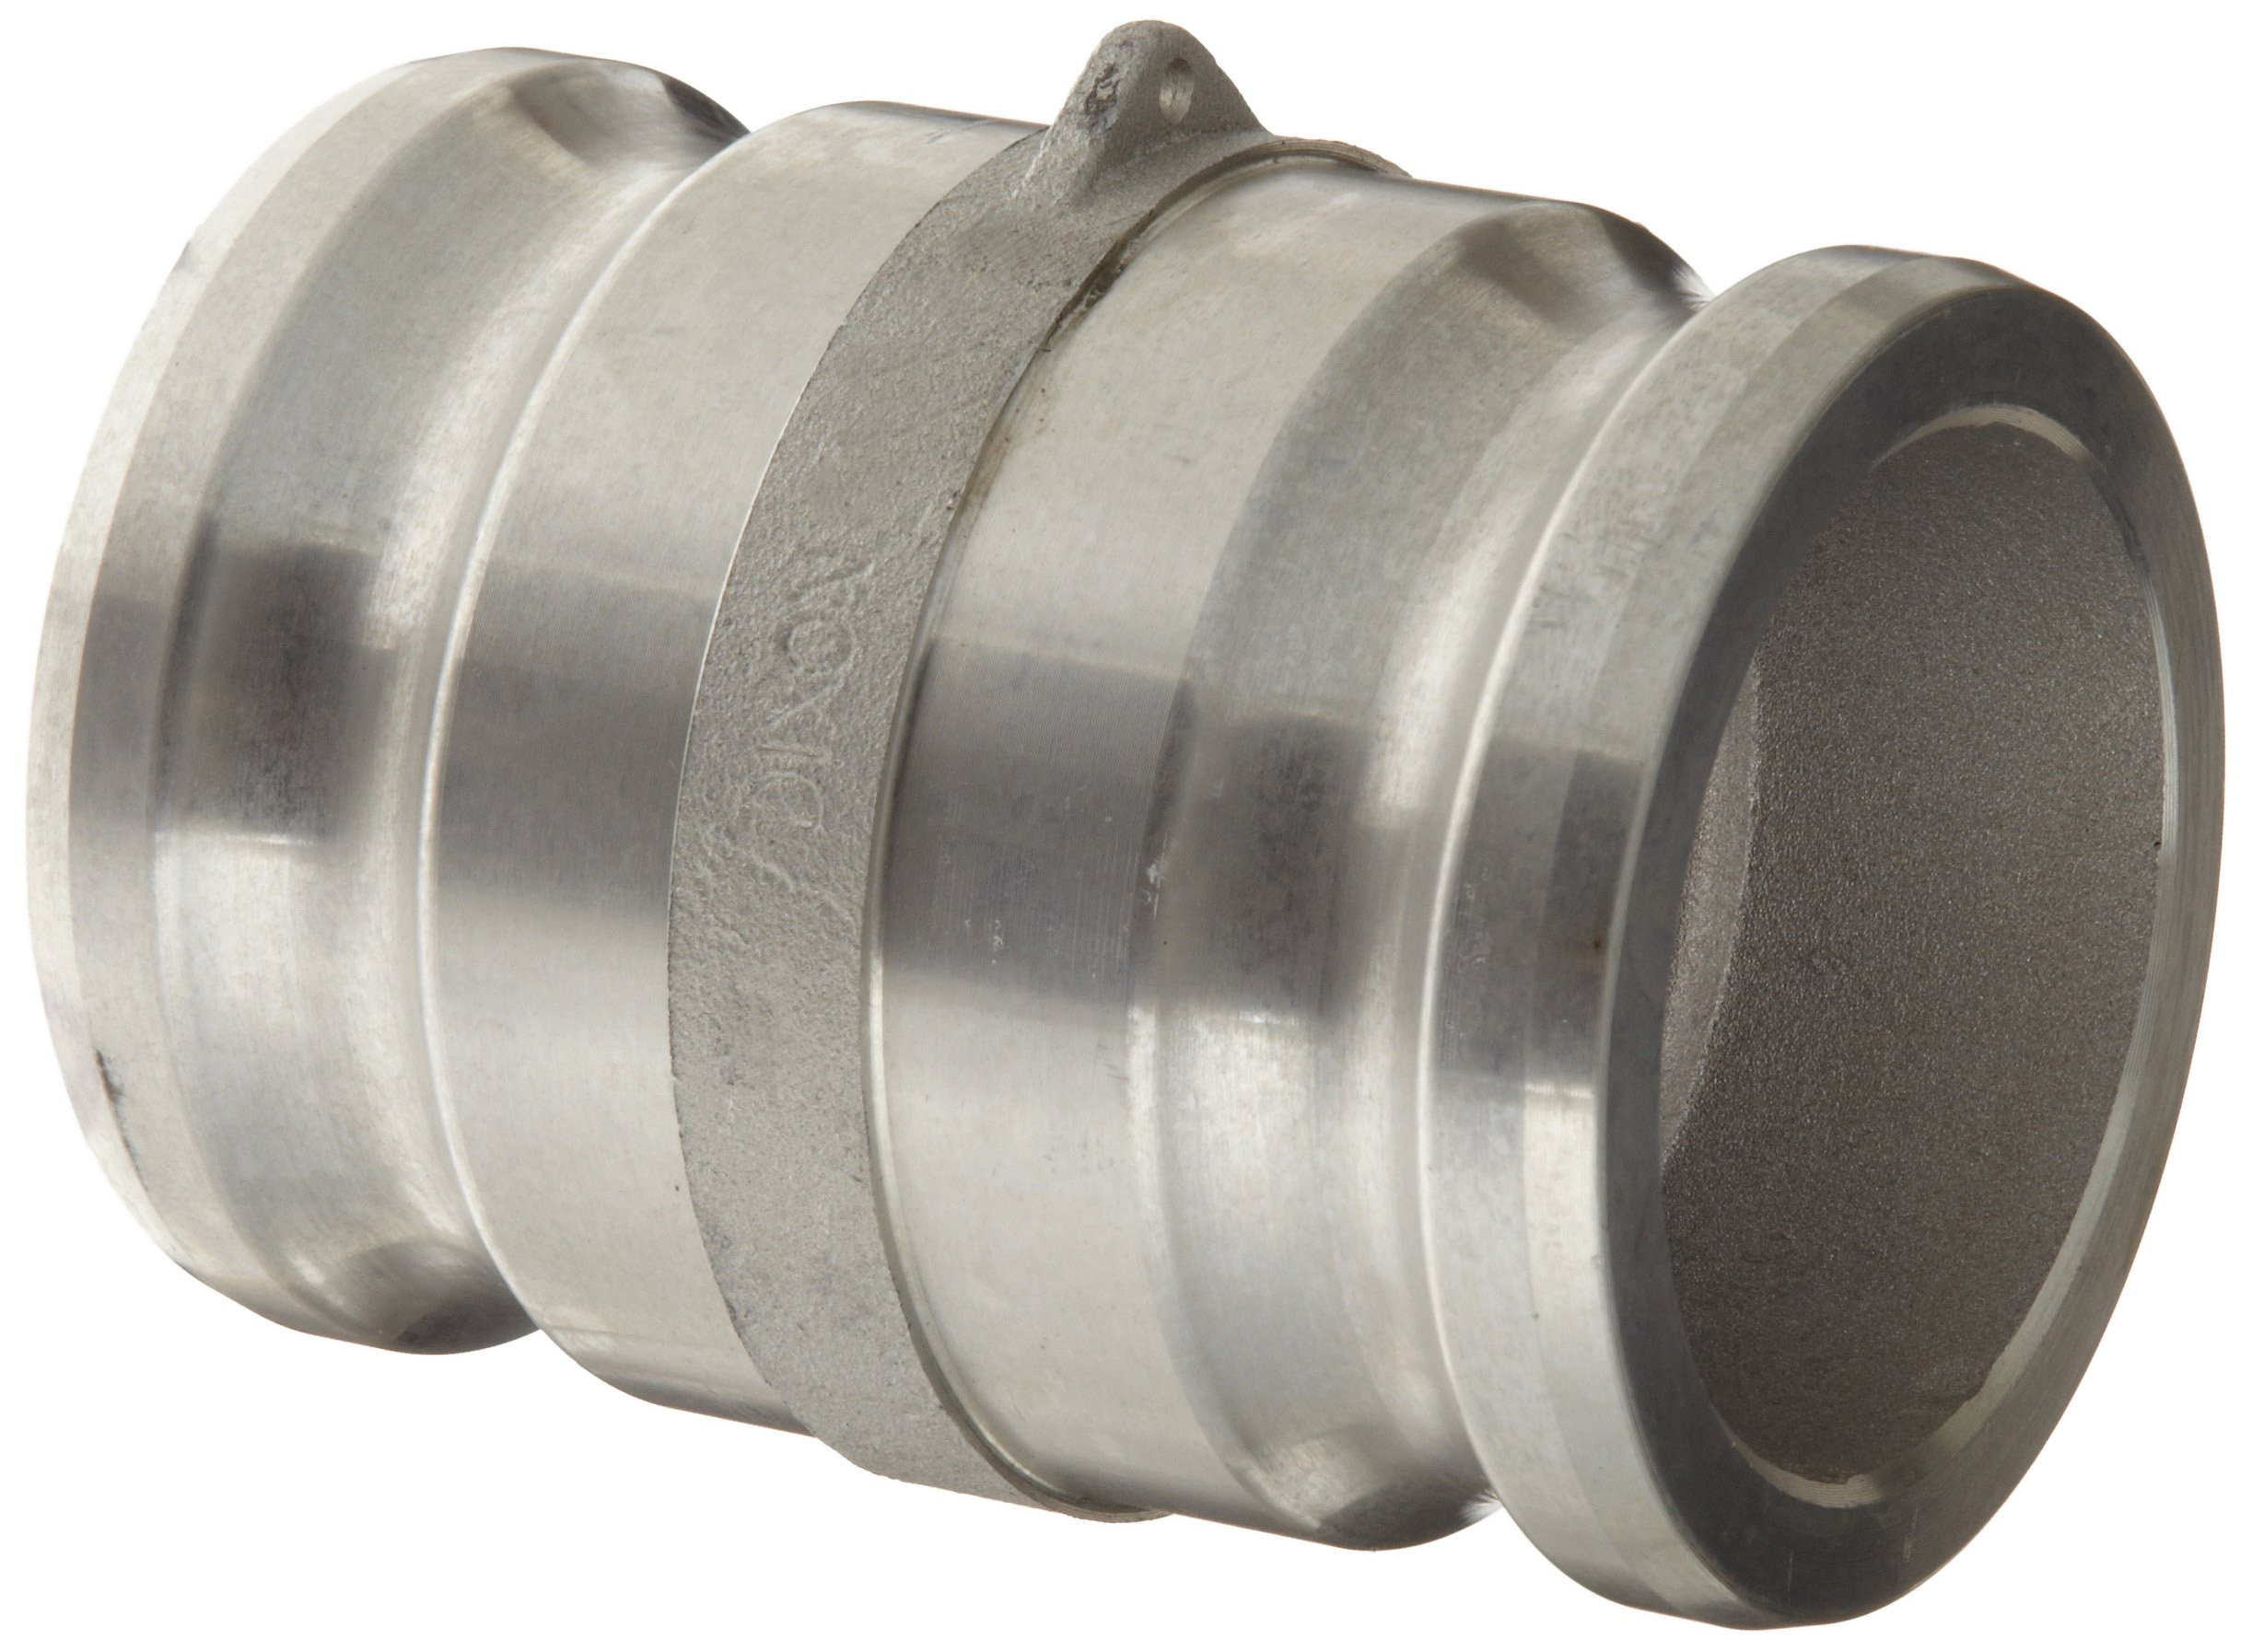 Dixon 300-AA-AL Aluminum Cam and Groove Hose Fitting, Spool Adapter, 3'' Plug by Dixon Valve & Coupling (Image #1)